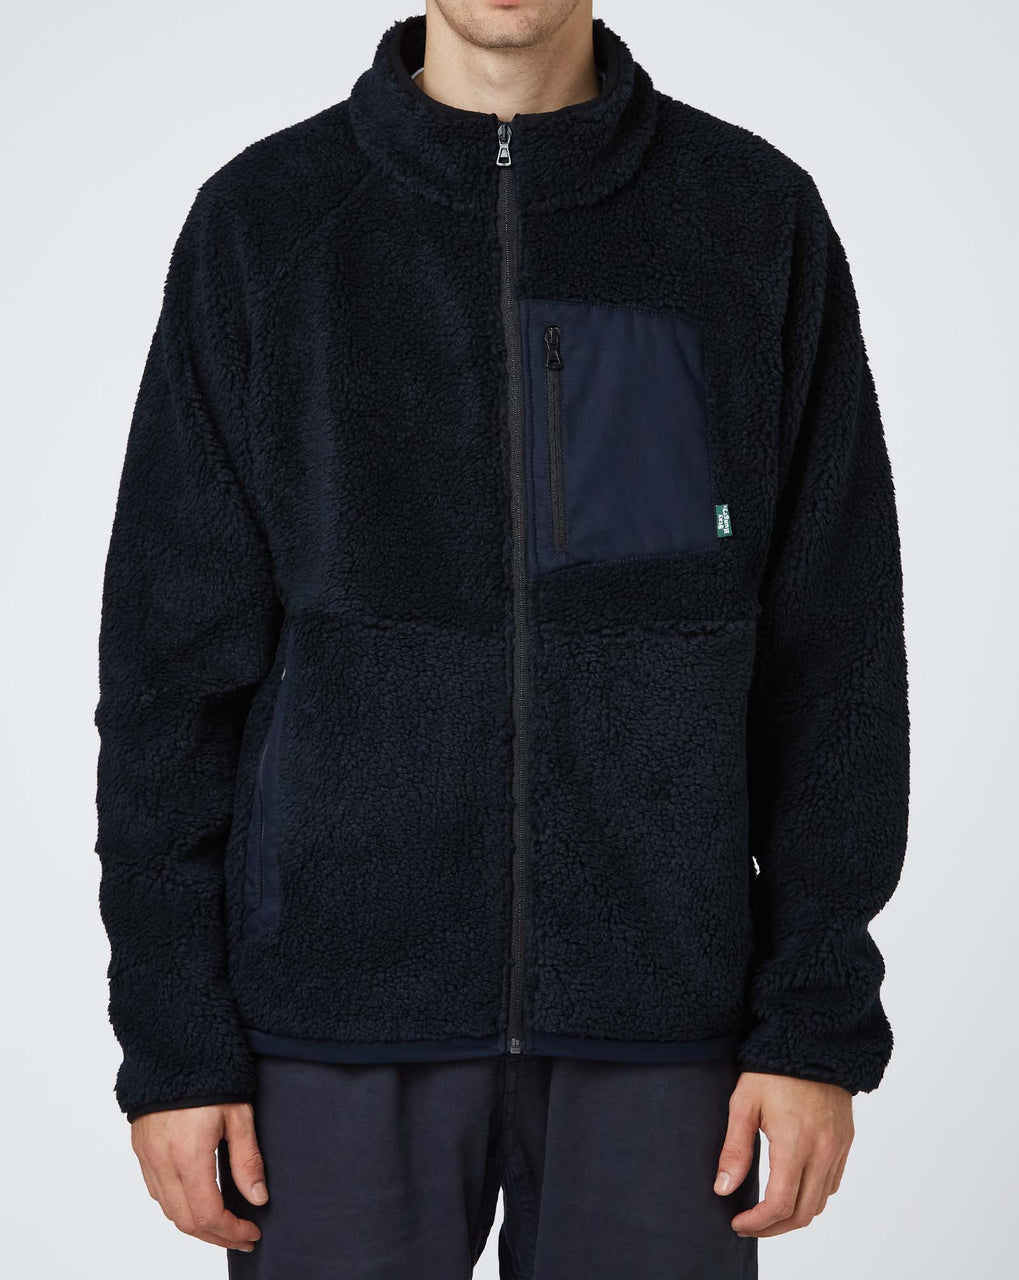 Stay Hungry Smoothie Teddy Fleece Jacket (Navy)